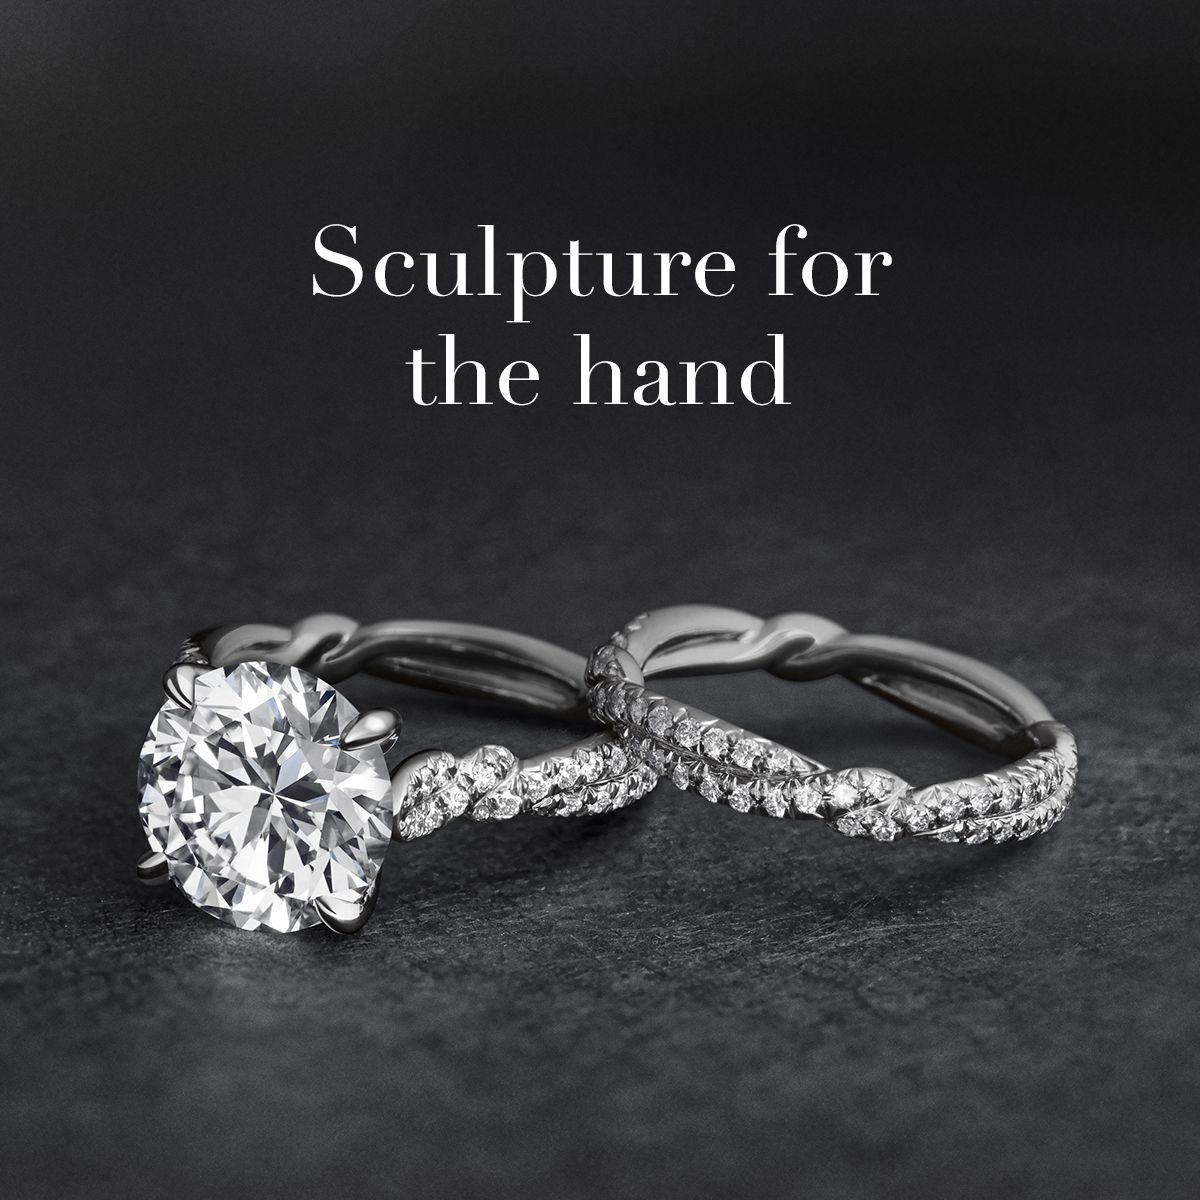 Mix or match a David Yurman wedding band and a brilliant diamond